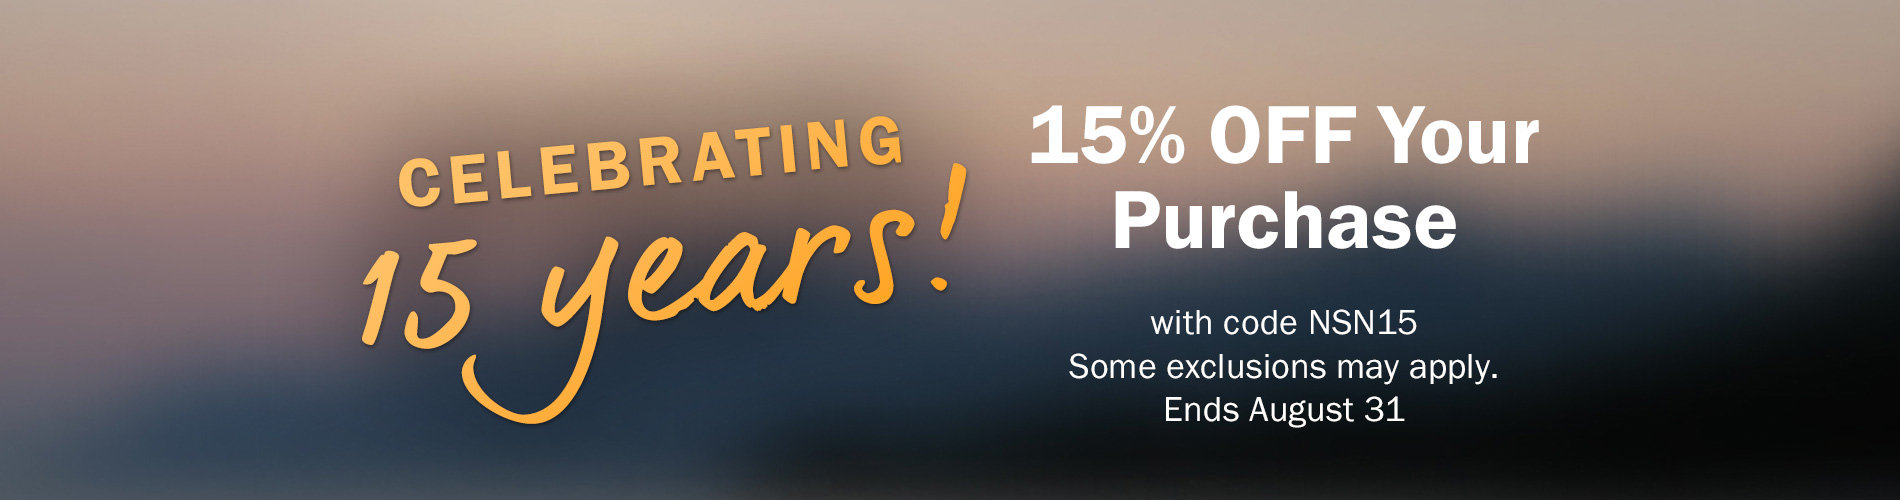 Celebrating 15 years! 15% OFF Your Purchase with code NSN15. Some exclusions may apply. Ends August 31